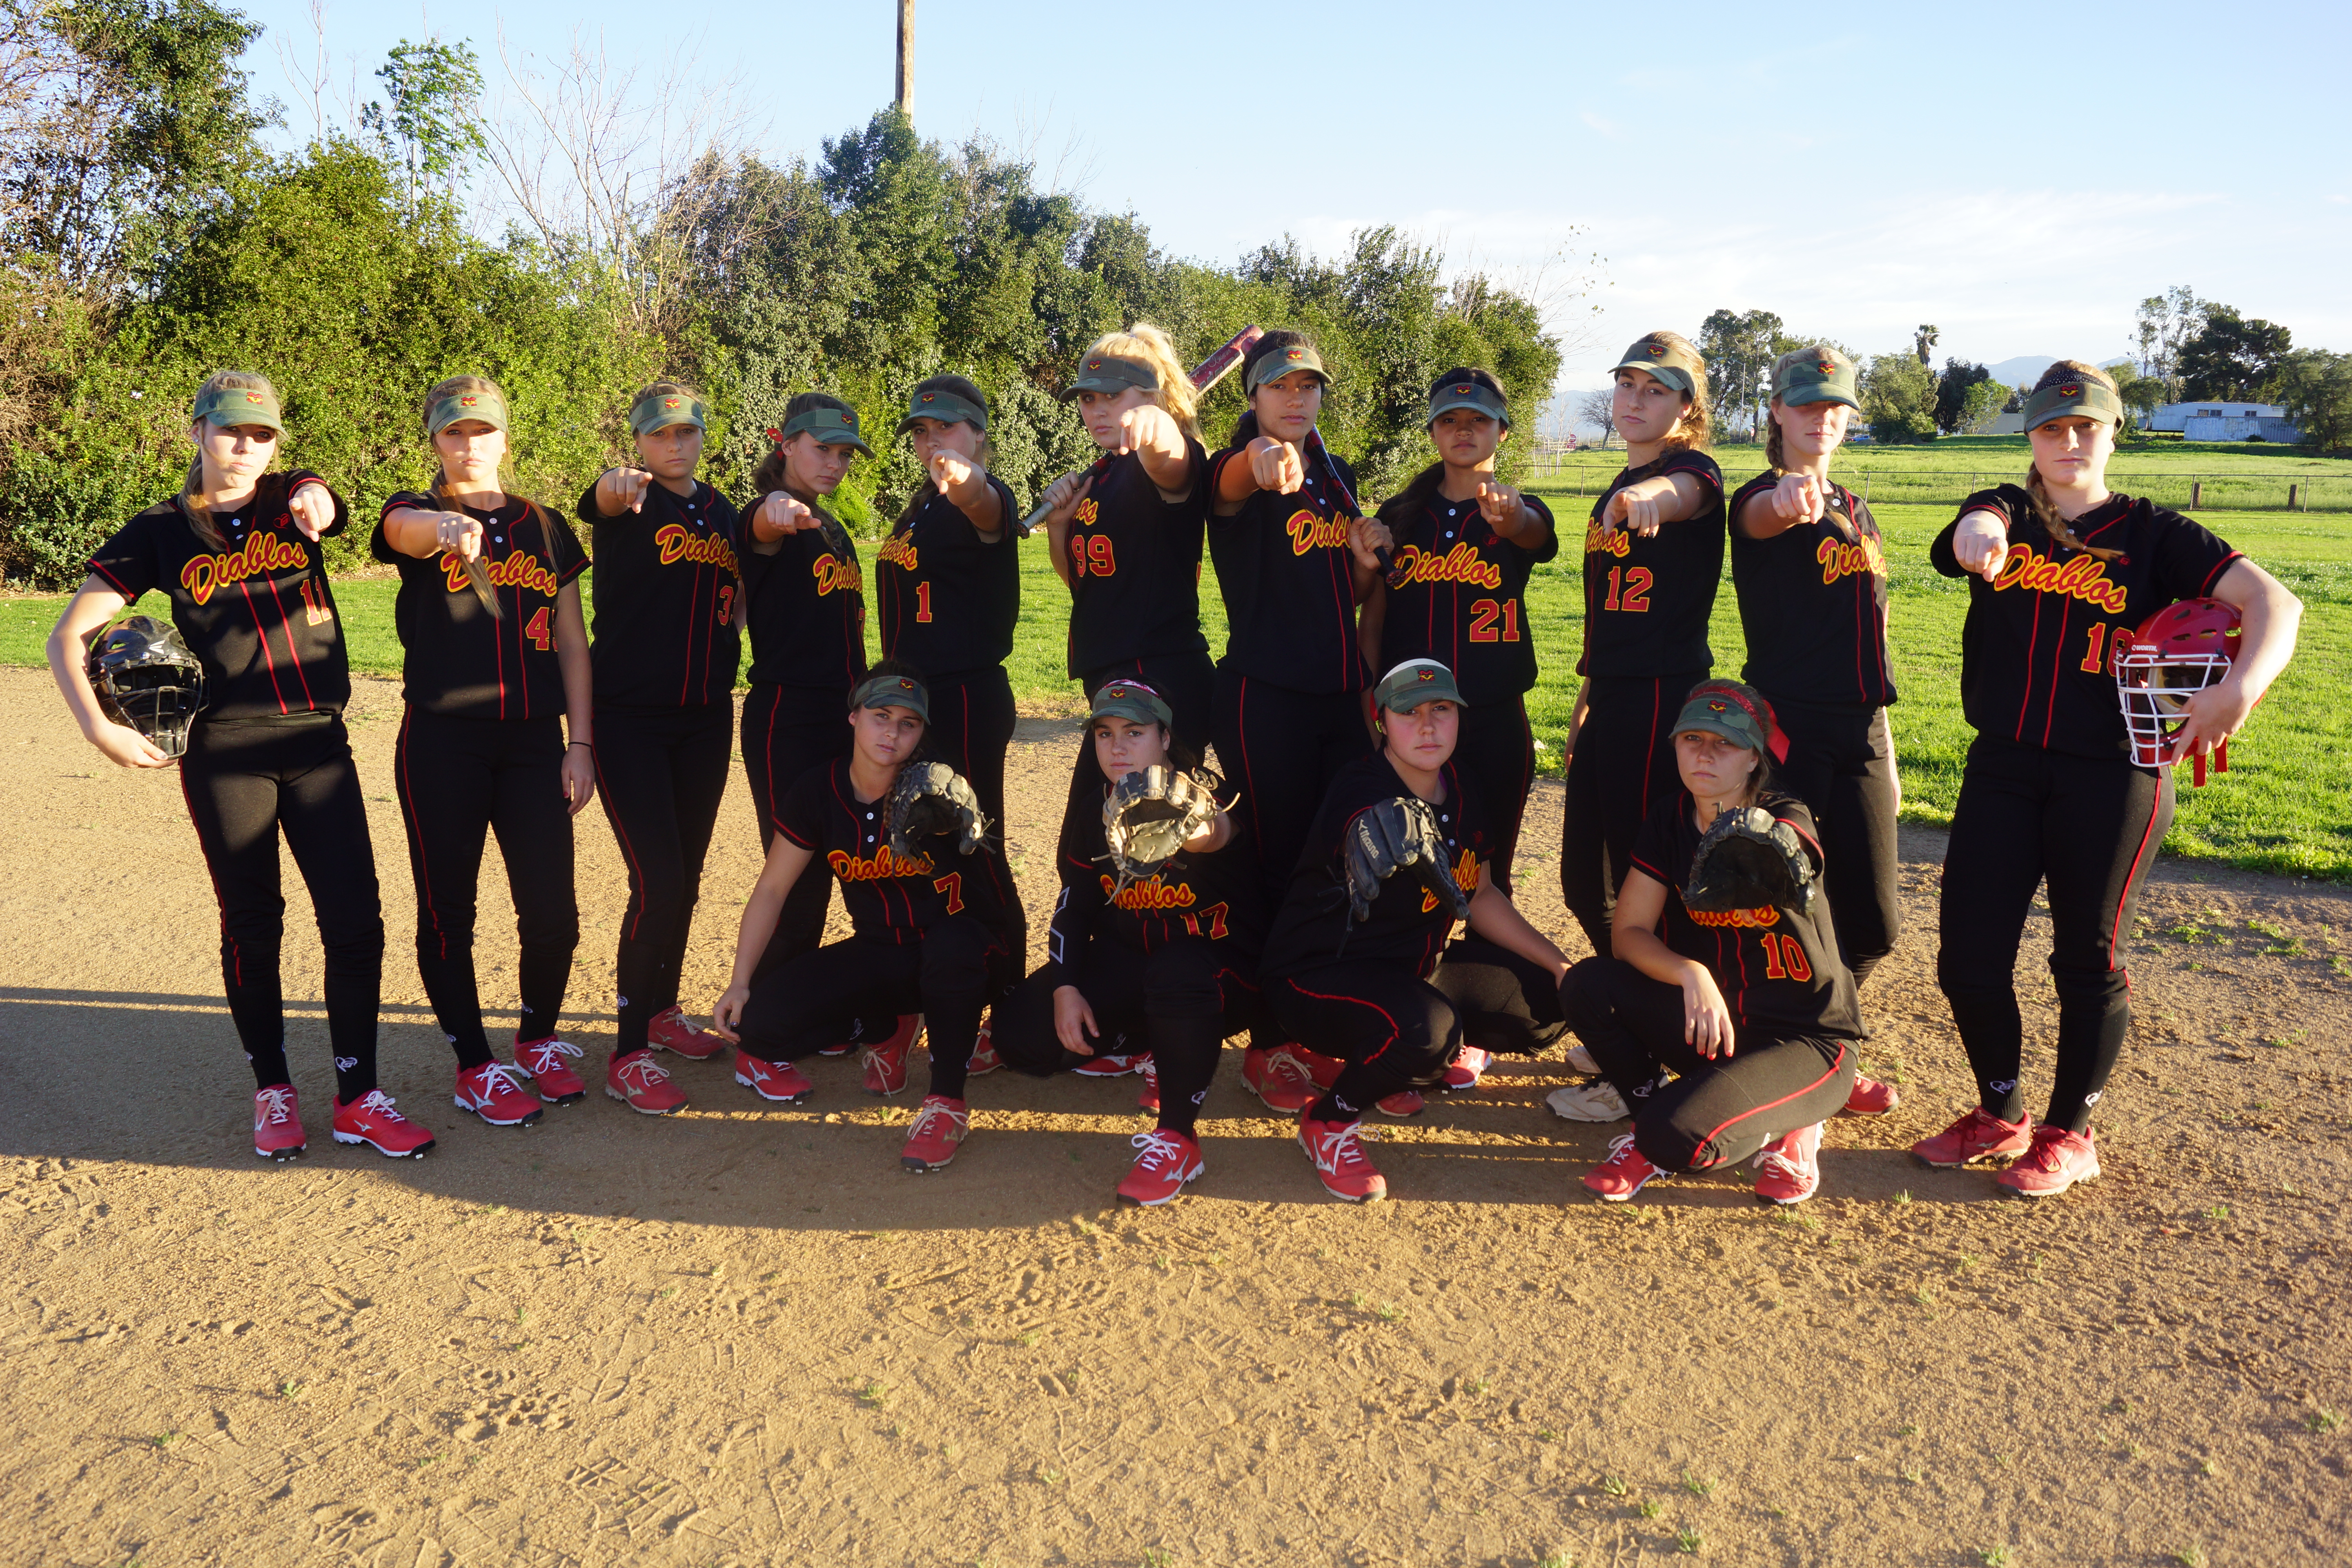 Mission Viejo softball is ranked No. 1 in the preseason Super 25 (Photo:  Candace Ybarra)